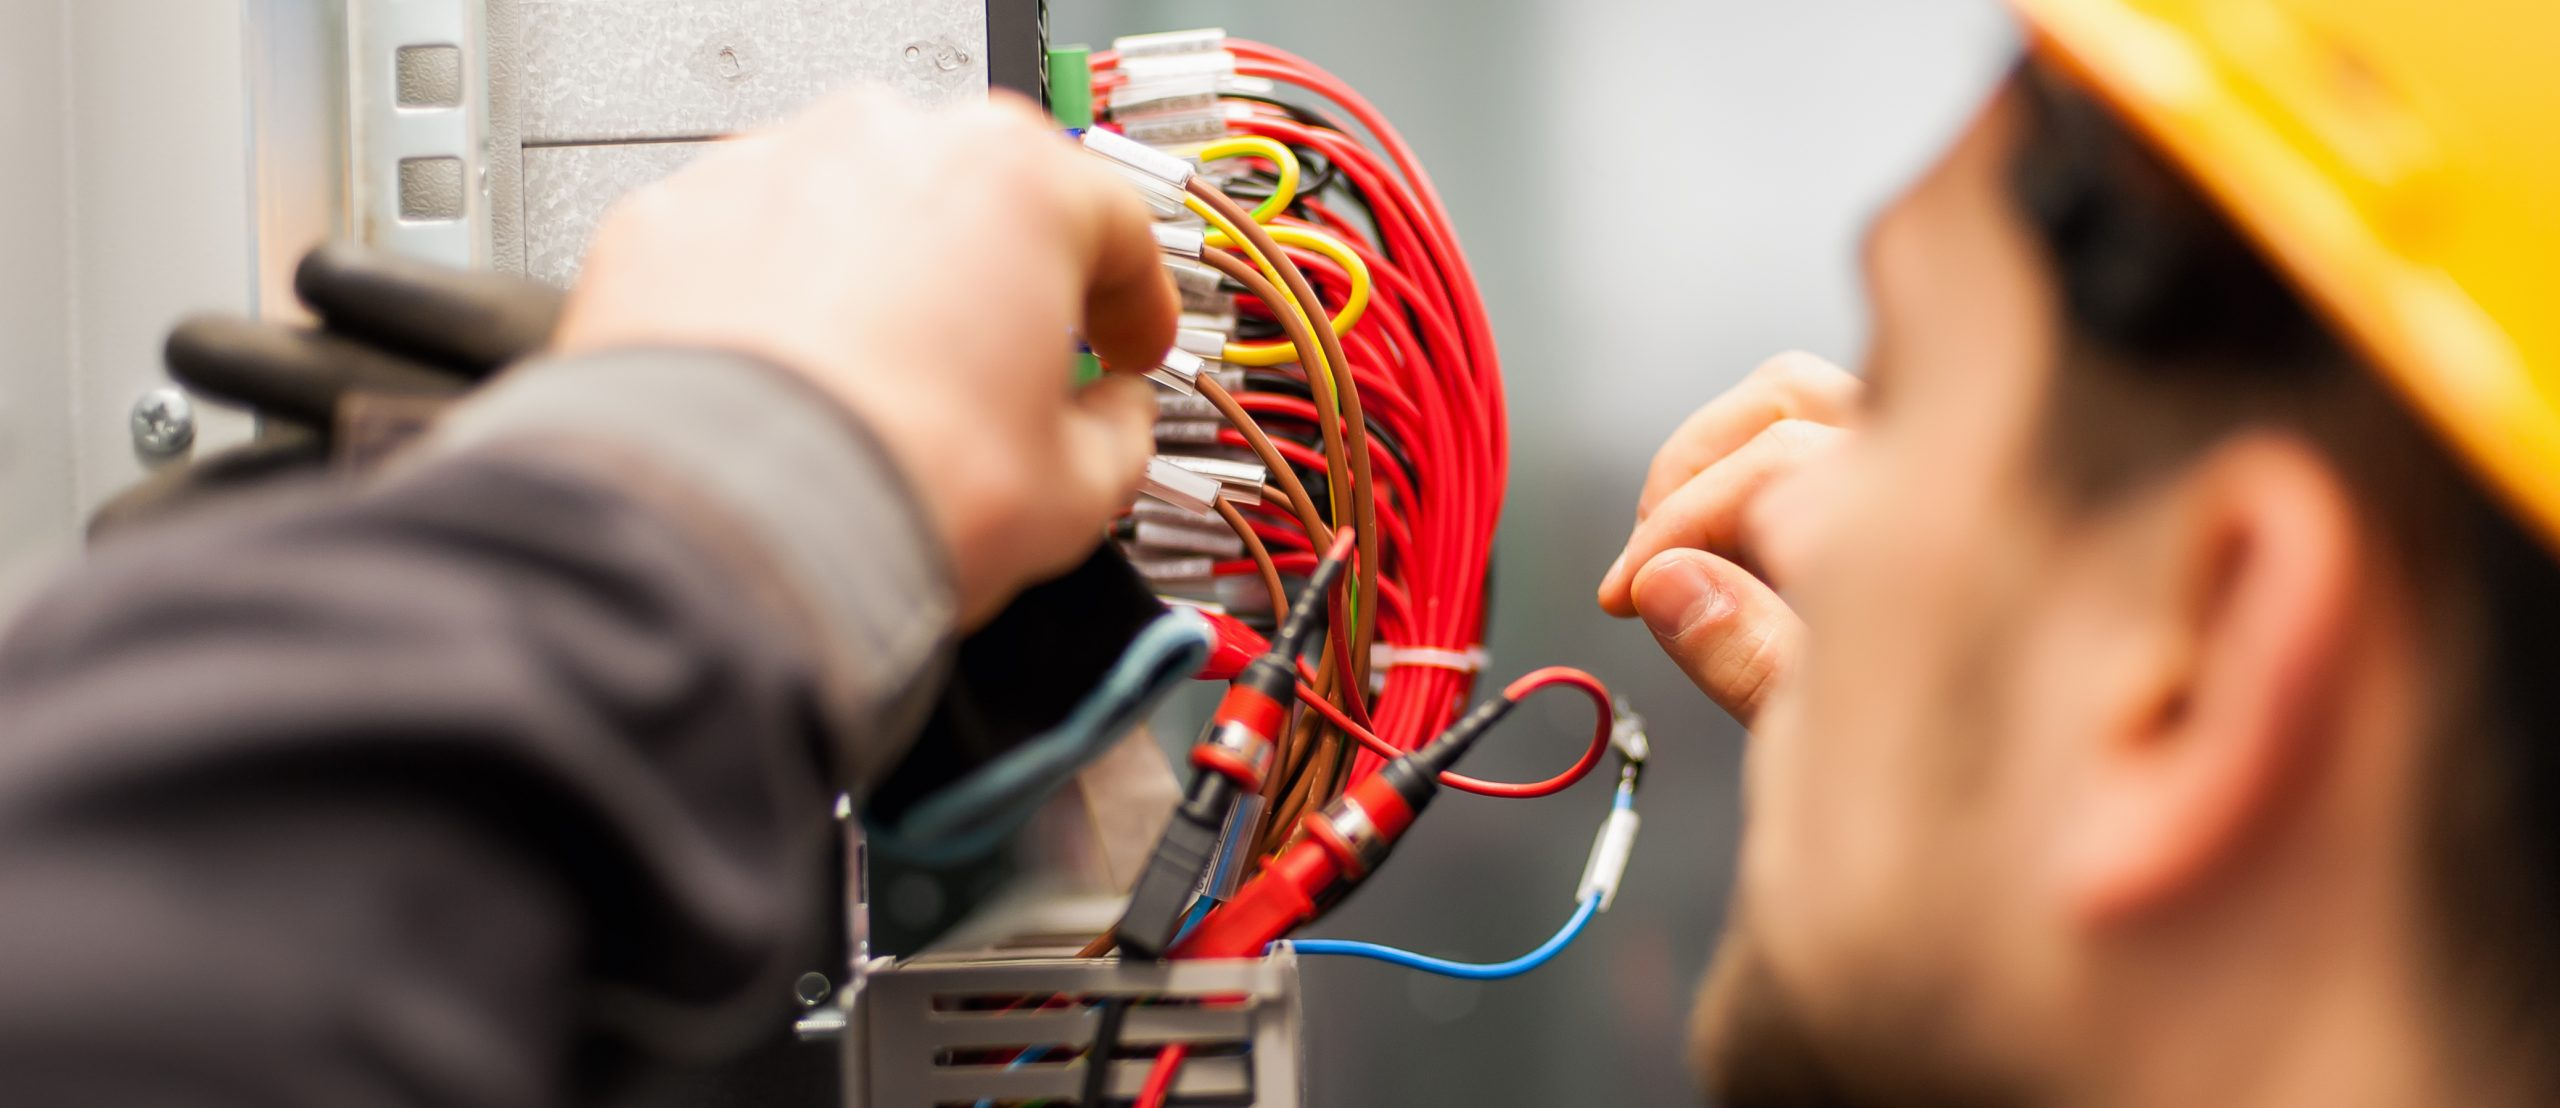 Electrician,Engineer,Tests,Electrical,Installations,And,Wires,On,Relay,Protection